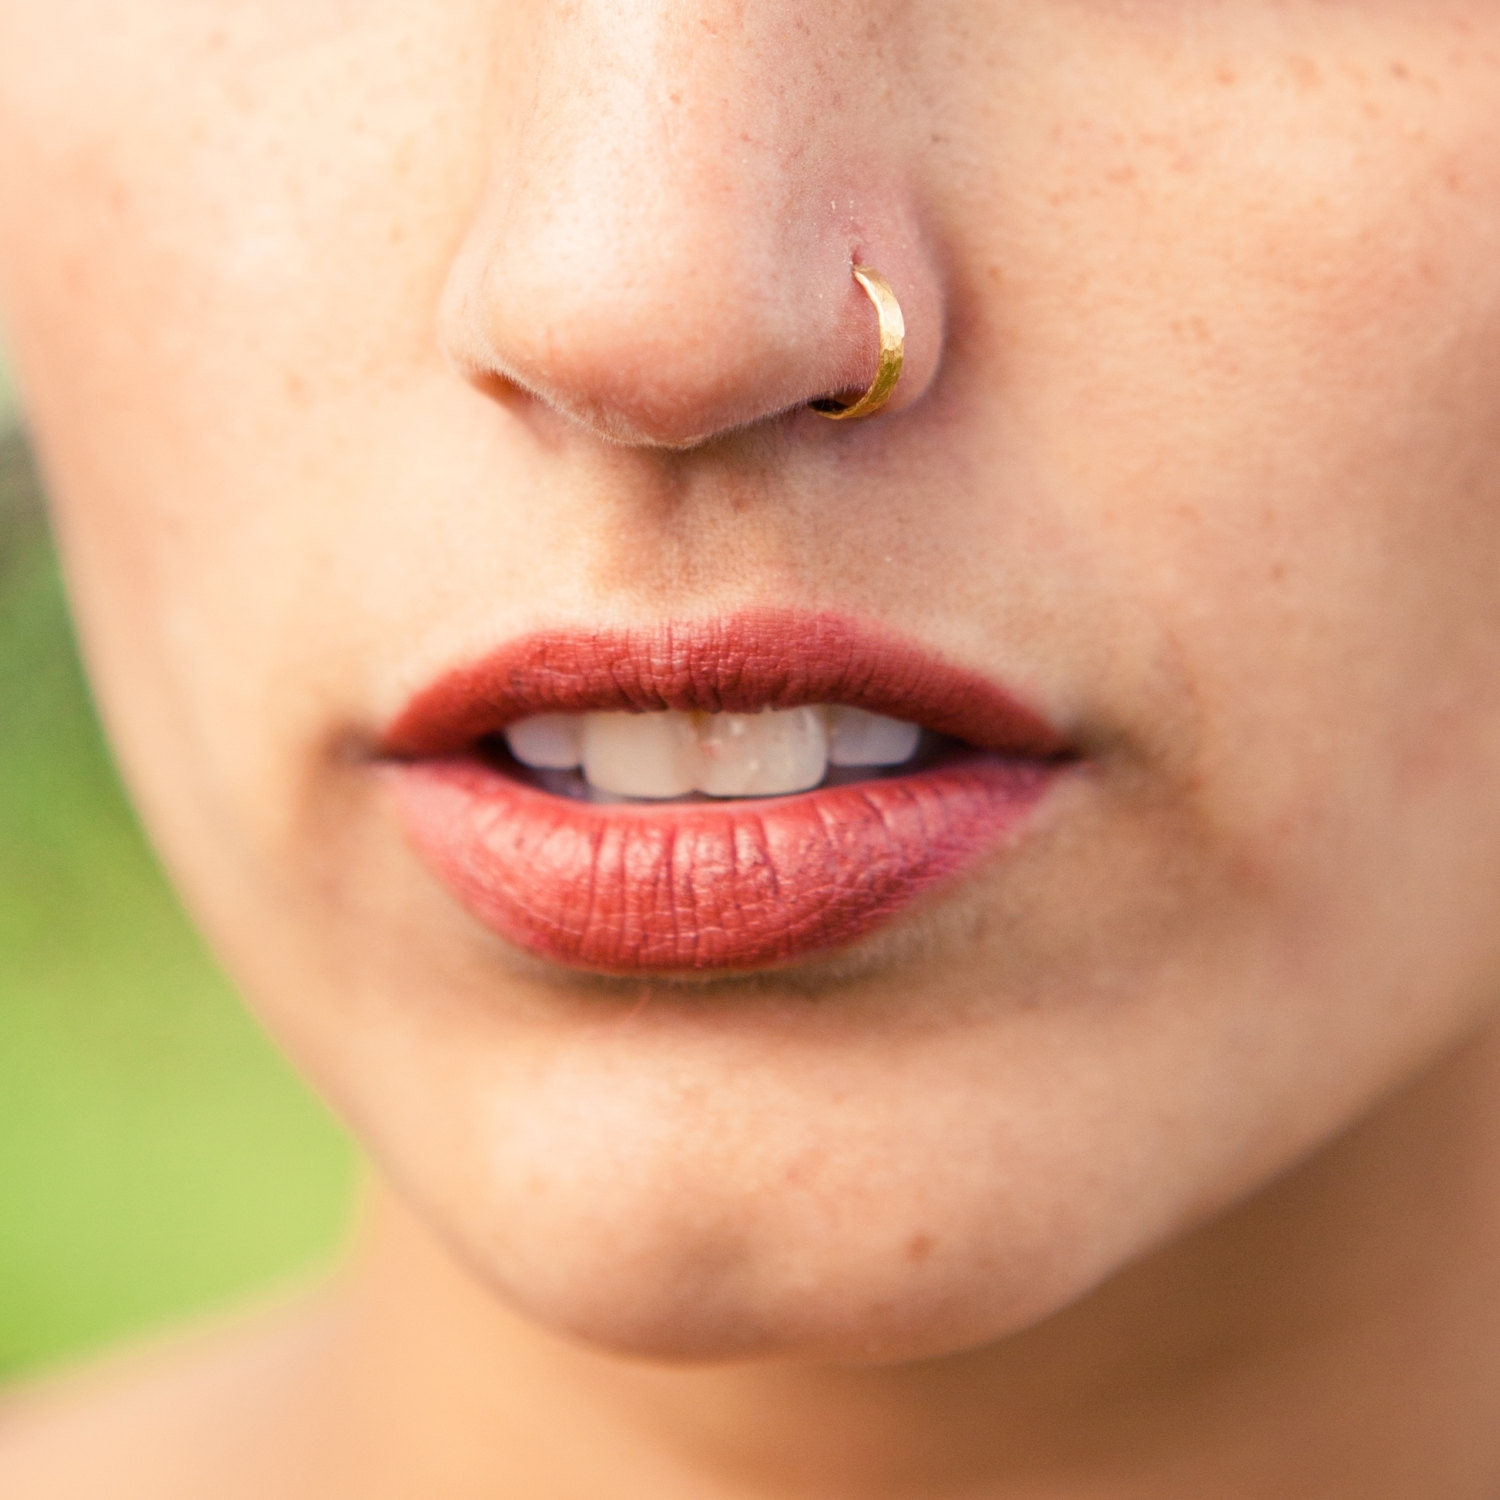 Gold Nose Ring. Indian Nose Ring. Gold Nose Hoop (View 5 of 15)